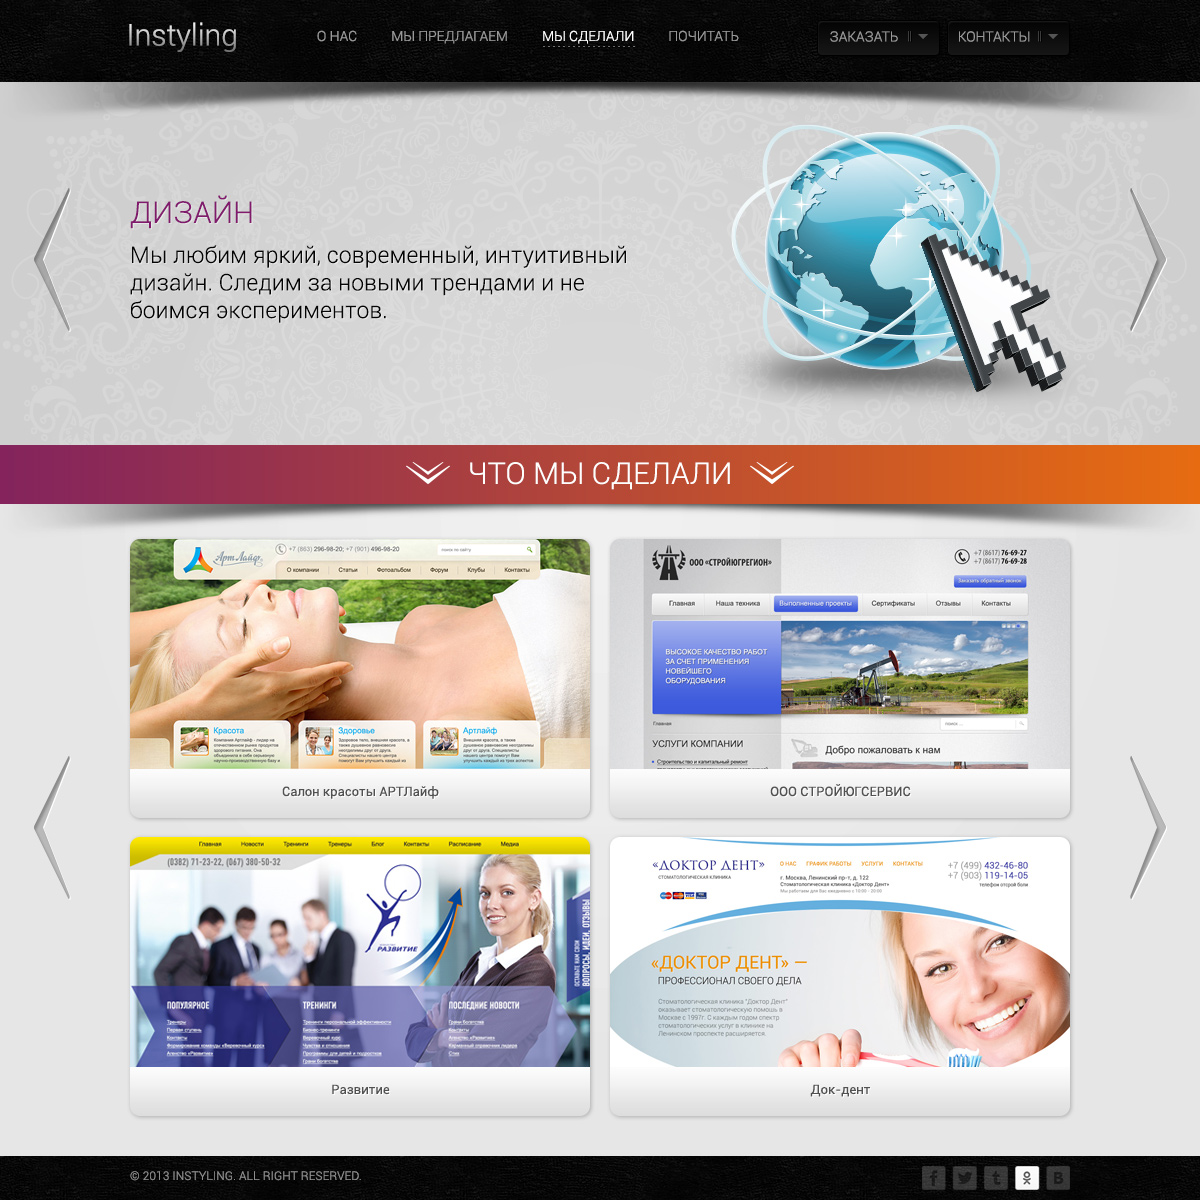 instyling web studio